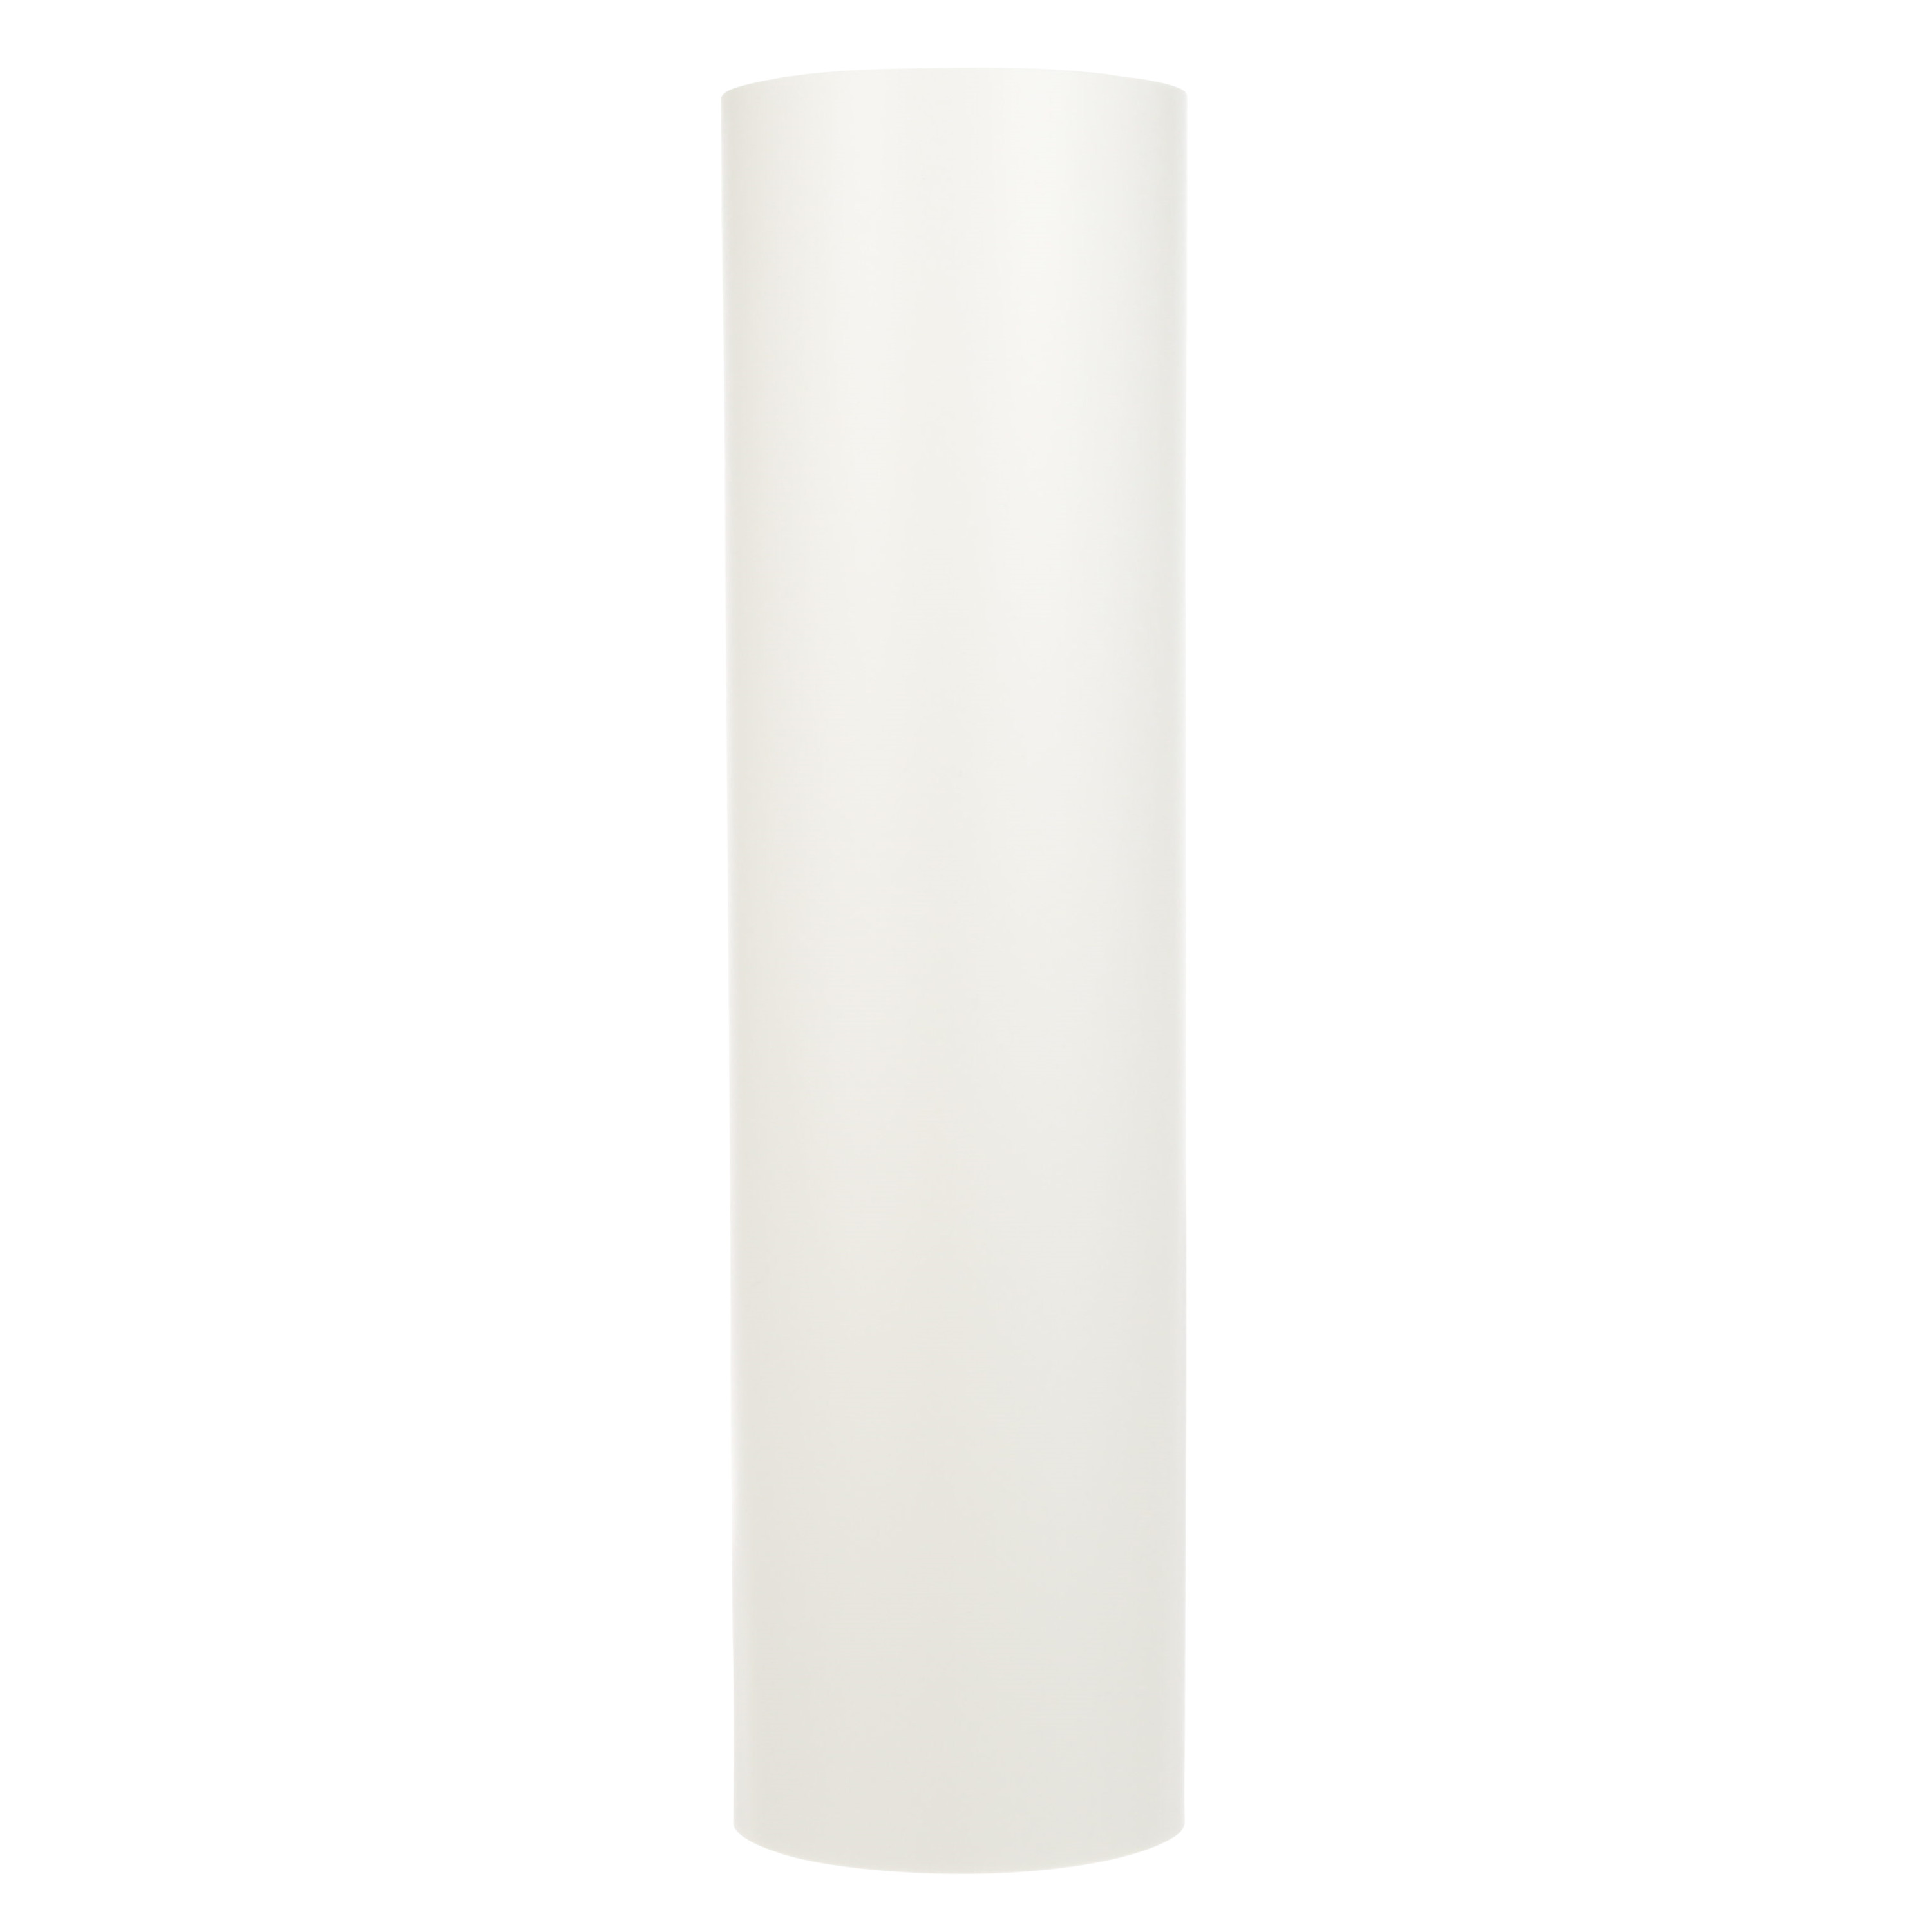 3M™ Silicone Secondary Release Liner 4997, White, 12 in X 180 yd, 4 mil, 1 roll per case